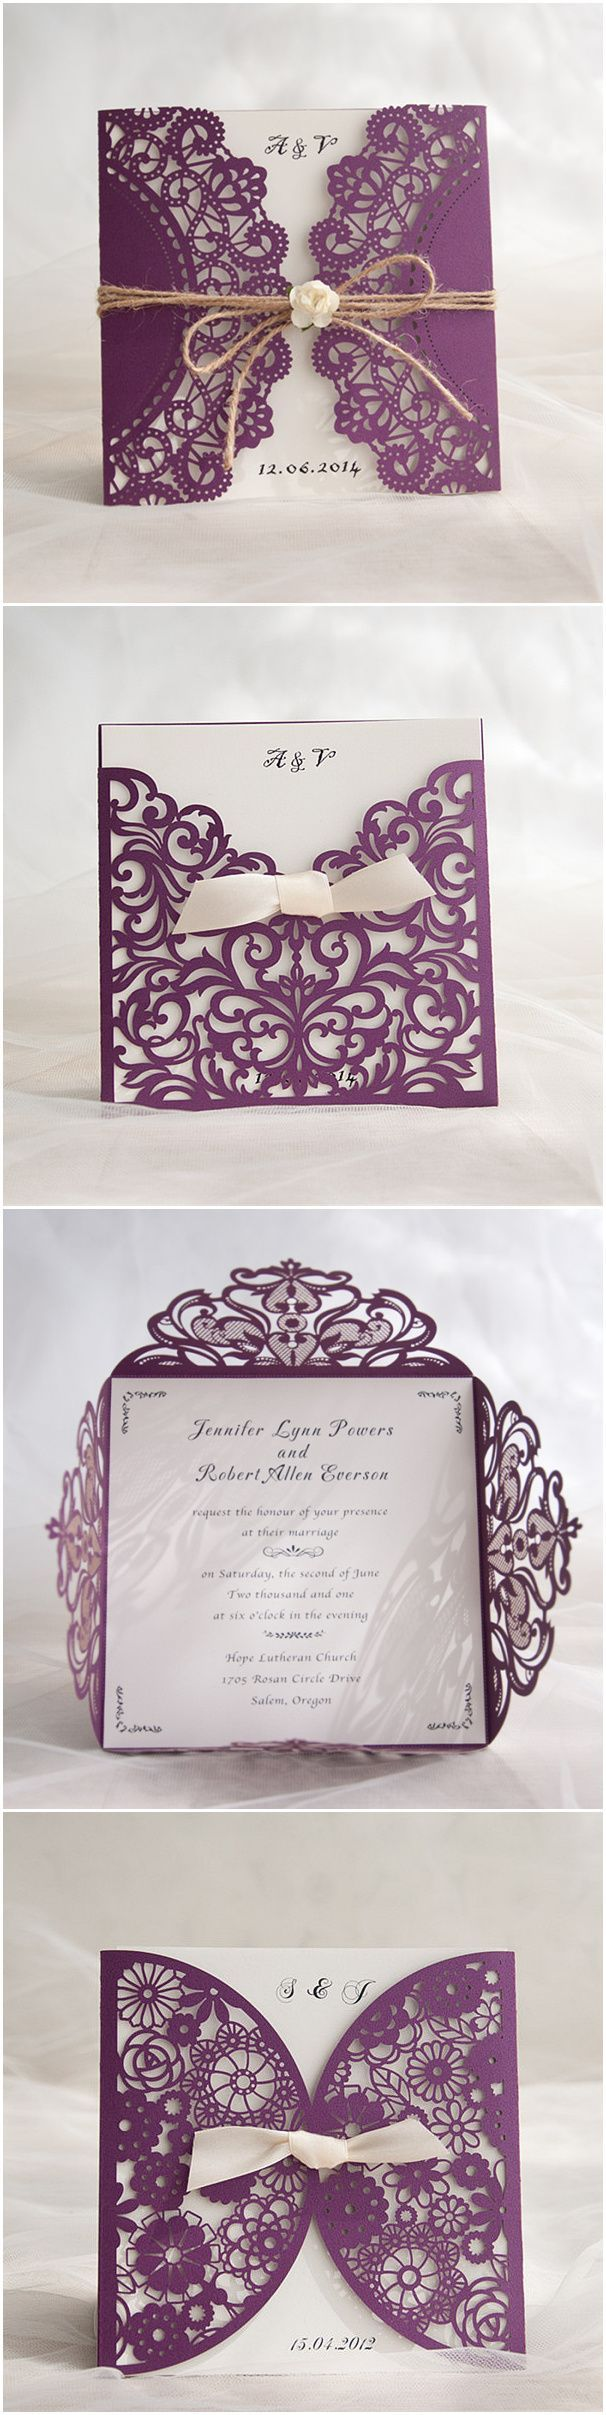 Affordable Laser Cut Wedding Invitations at elegantweddinginvitescom